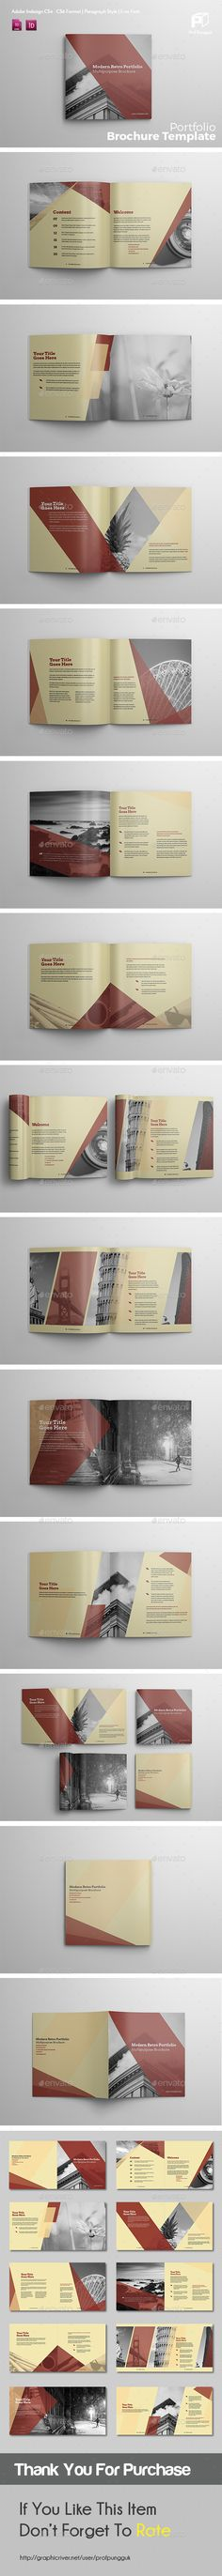 Square Brochure Vol.3 — InDesign INDD #color #Multipurpose Brochure • Available here → https://graphicriver.net/item/square-brochure-vol3/17893465?ref=pxcr